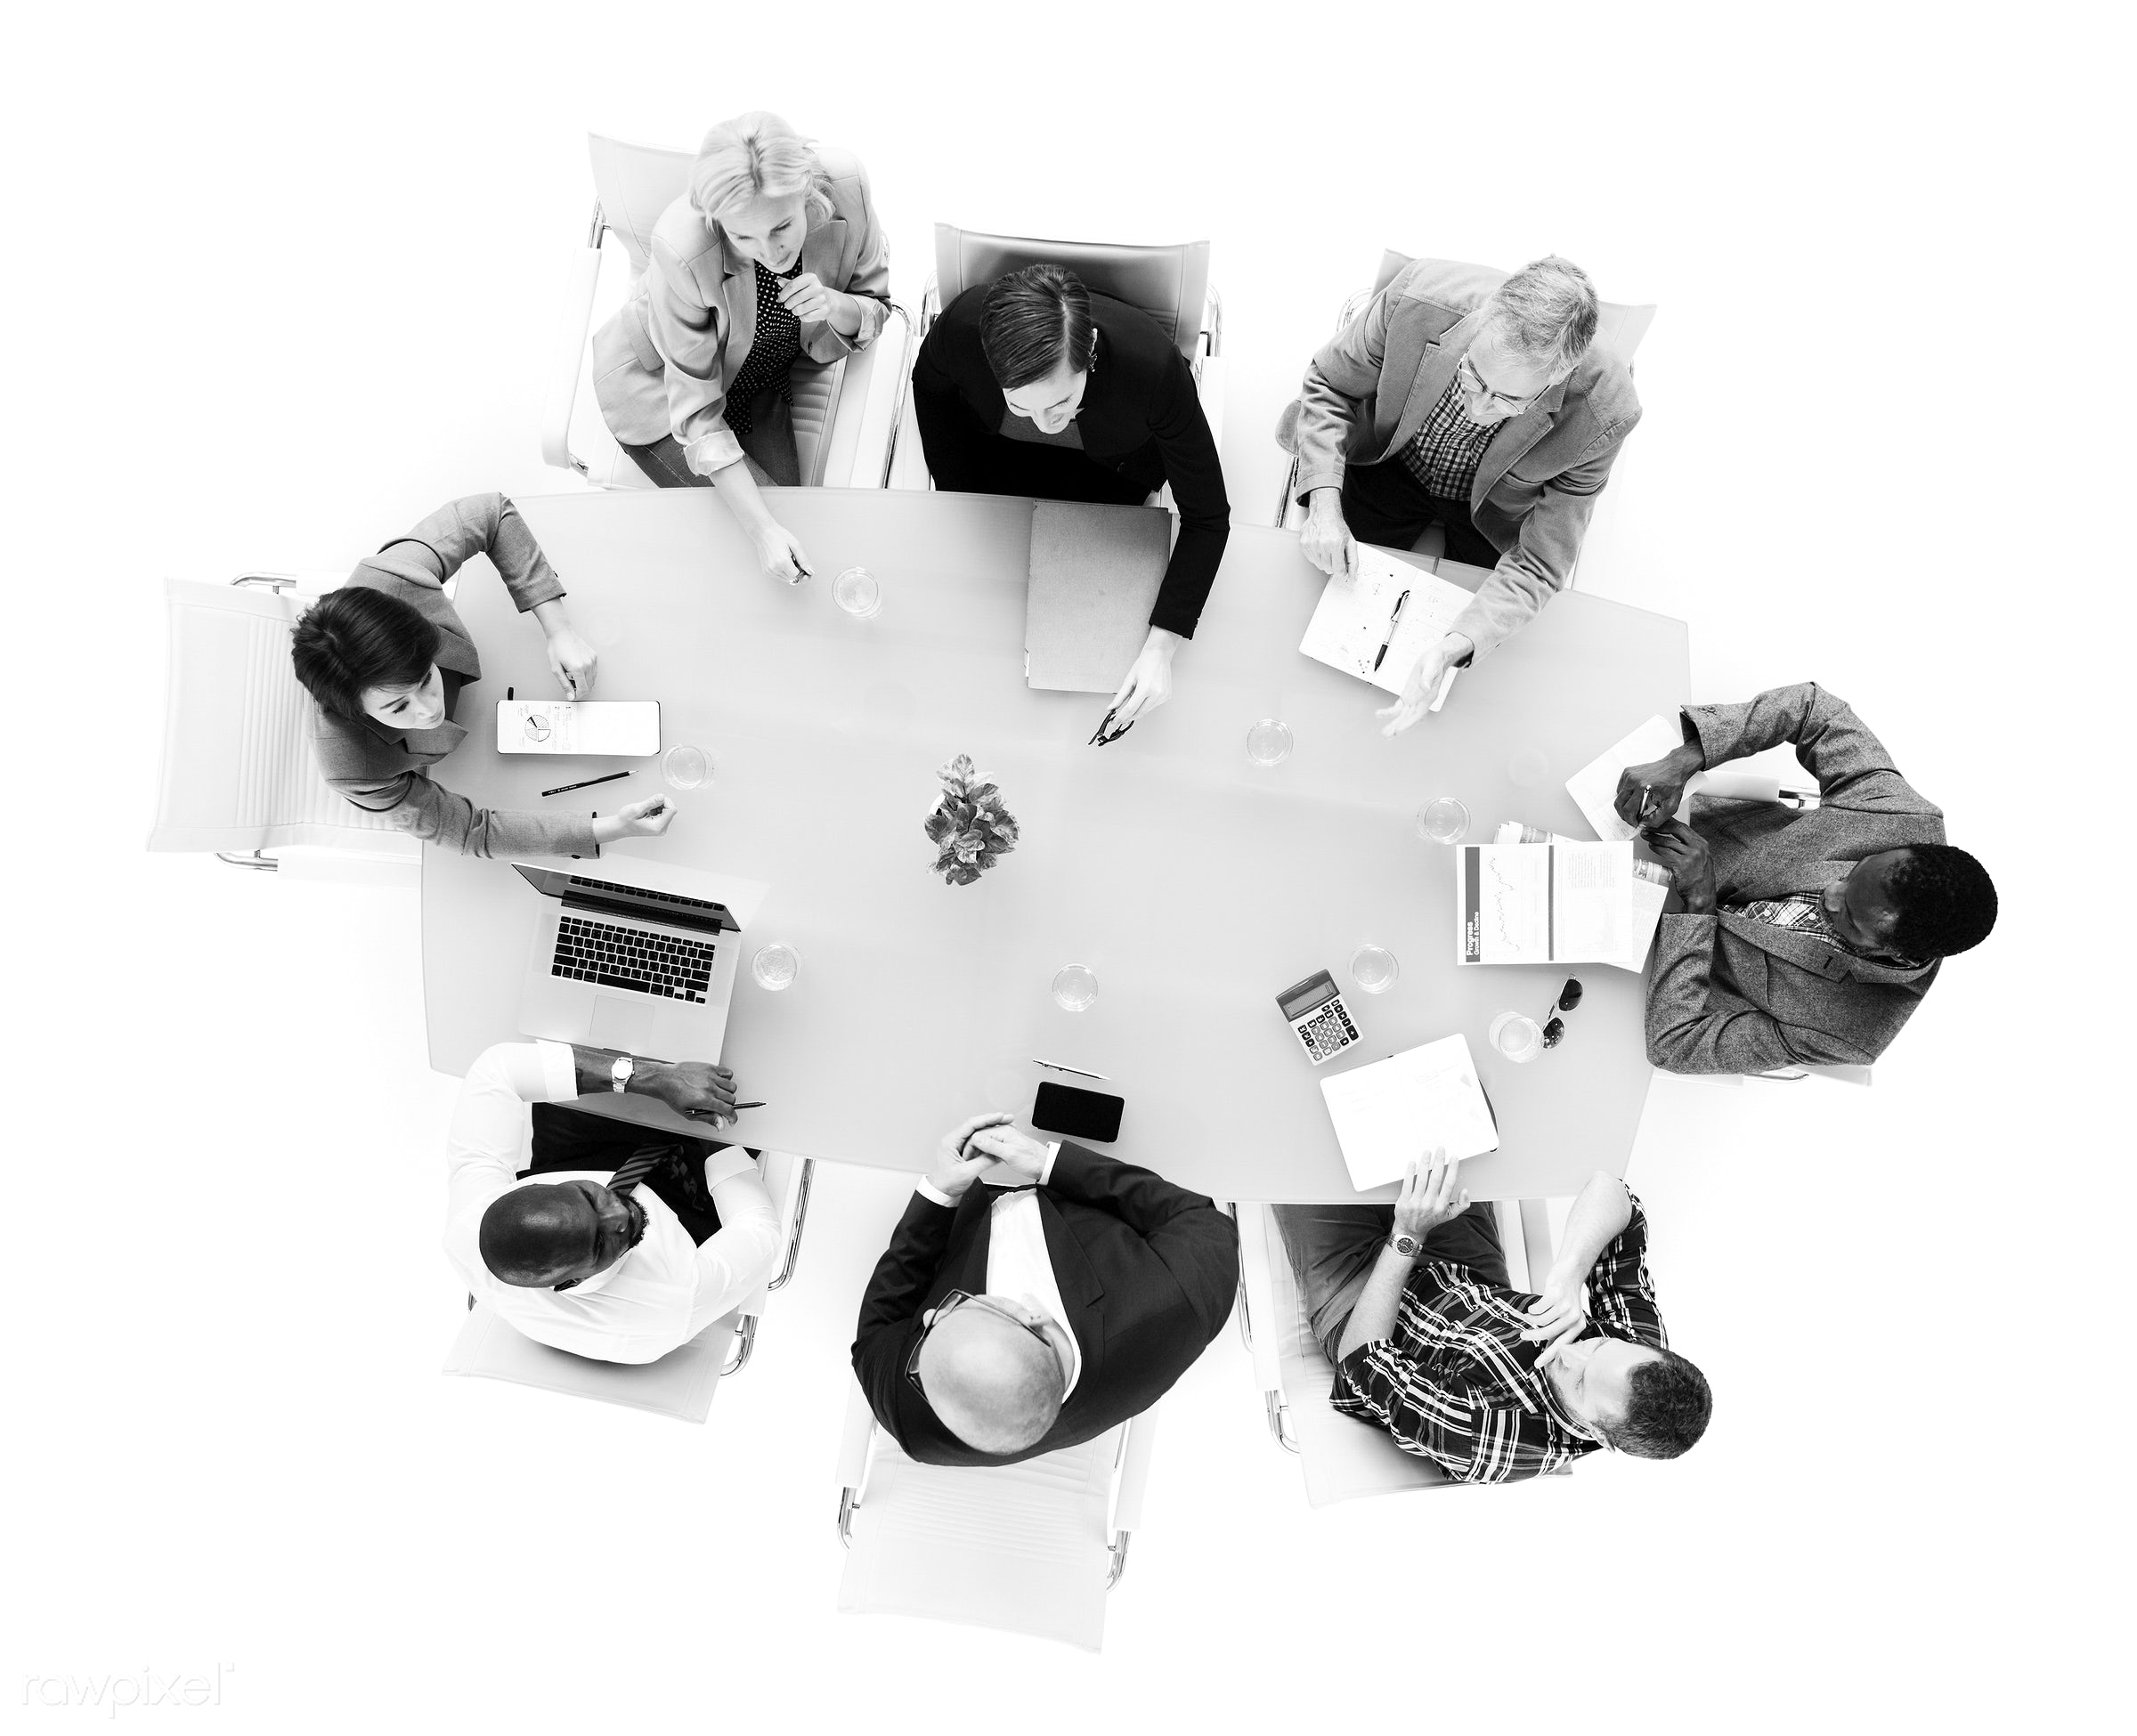 caucasian, aerial view, african ethnicity, asian ethnicity, board room, brainstorming, business, casual, communication,...